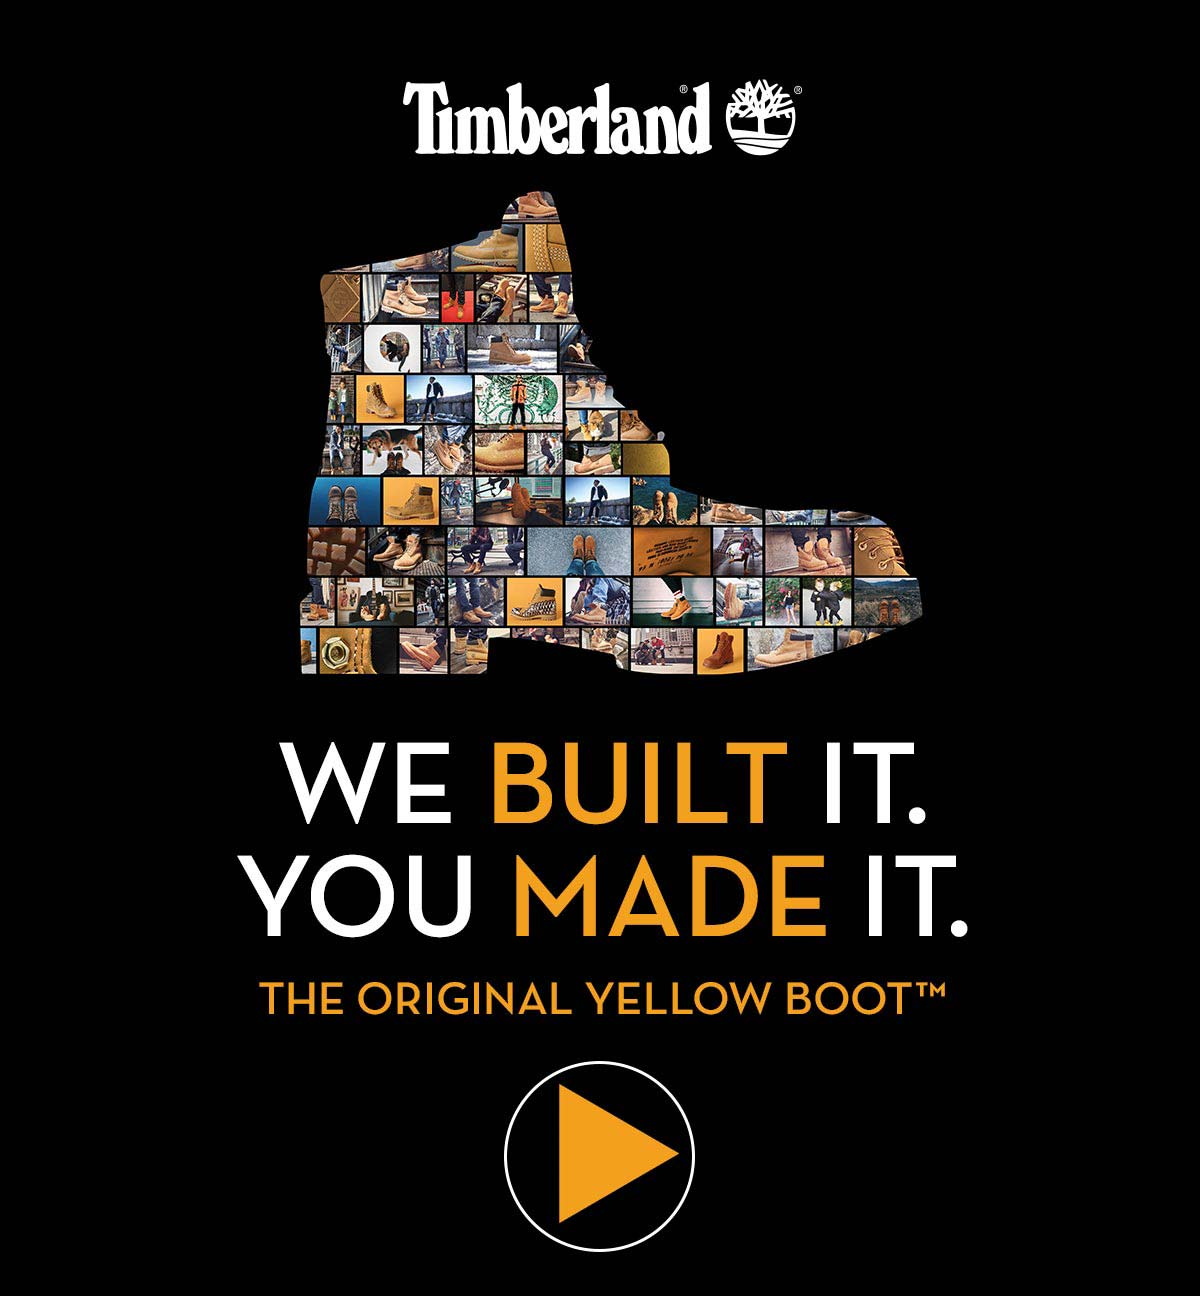 Timberland Product Video